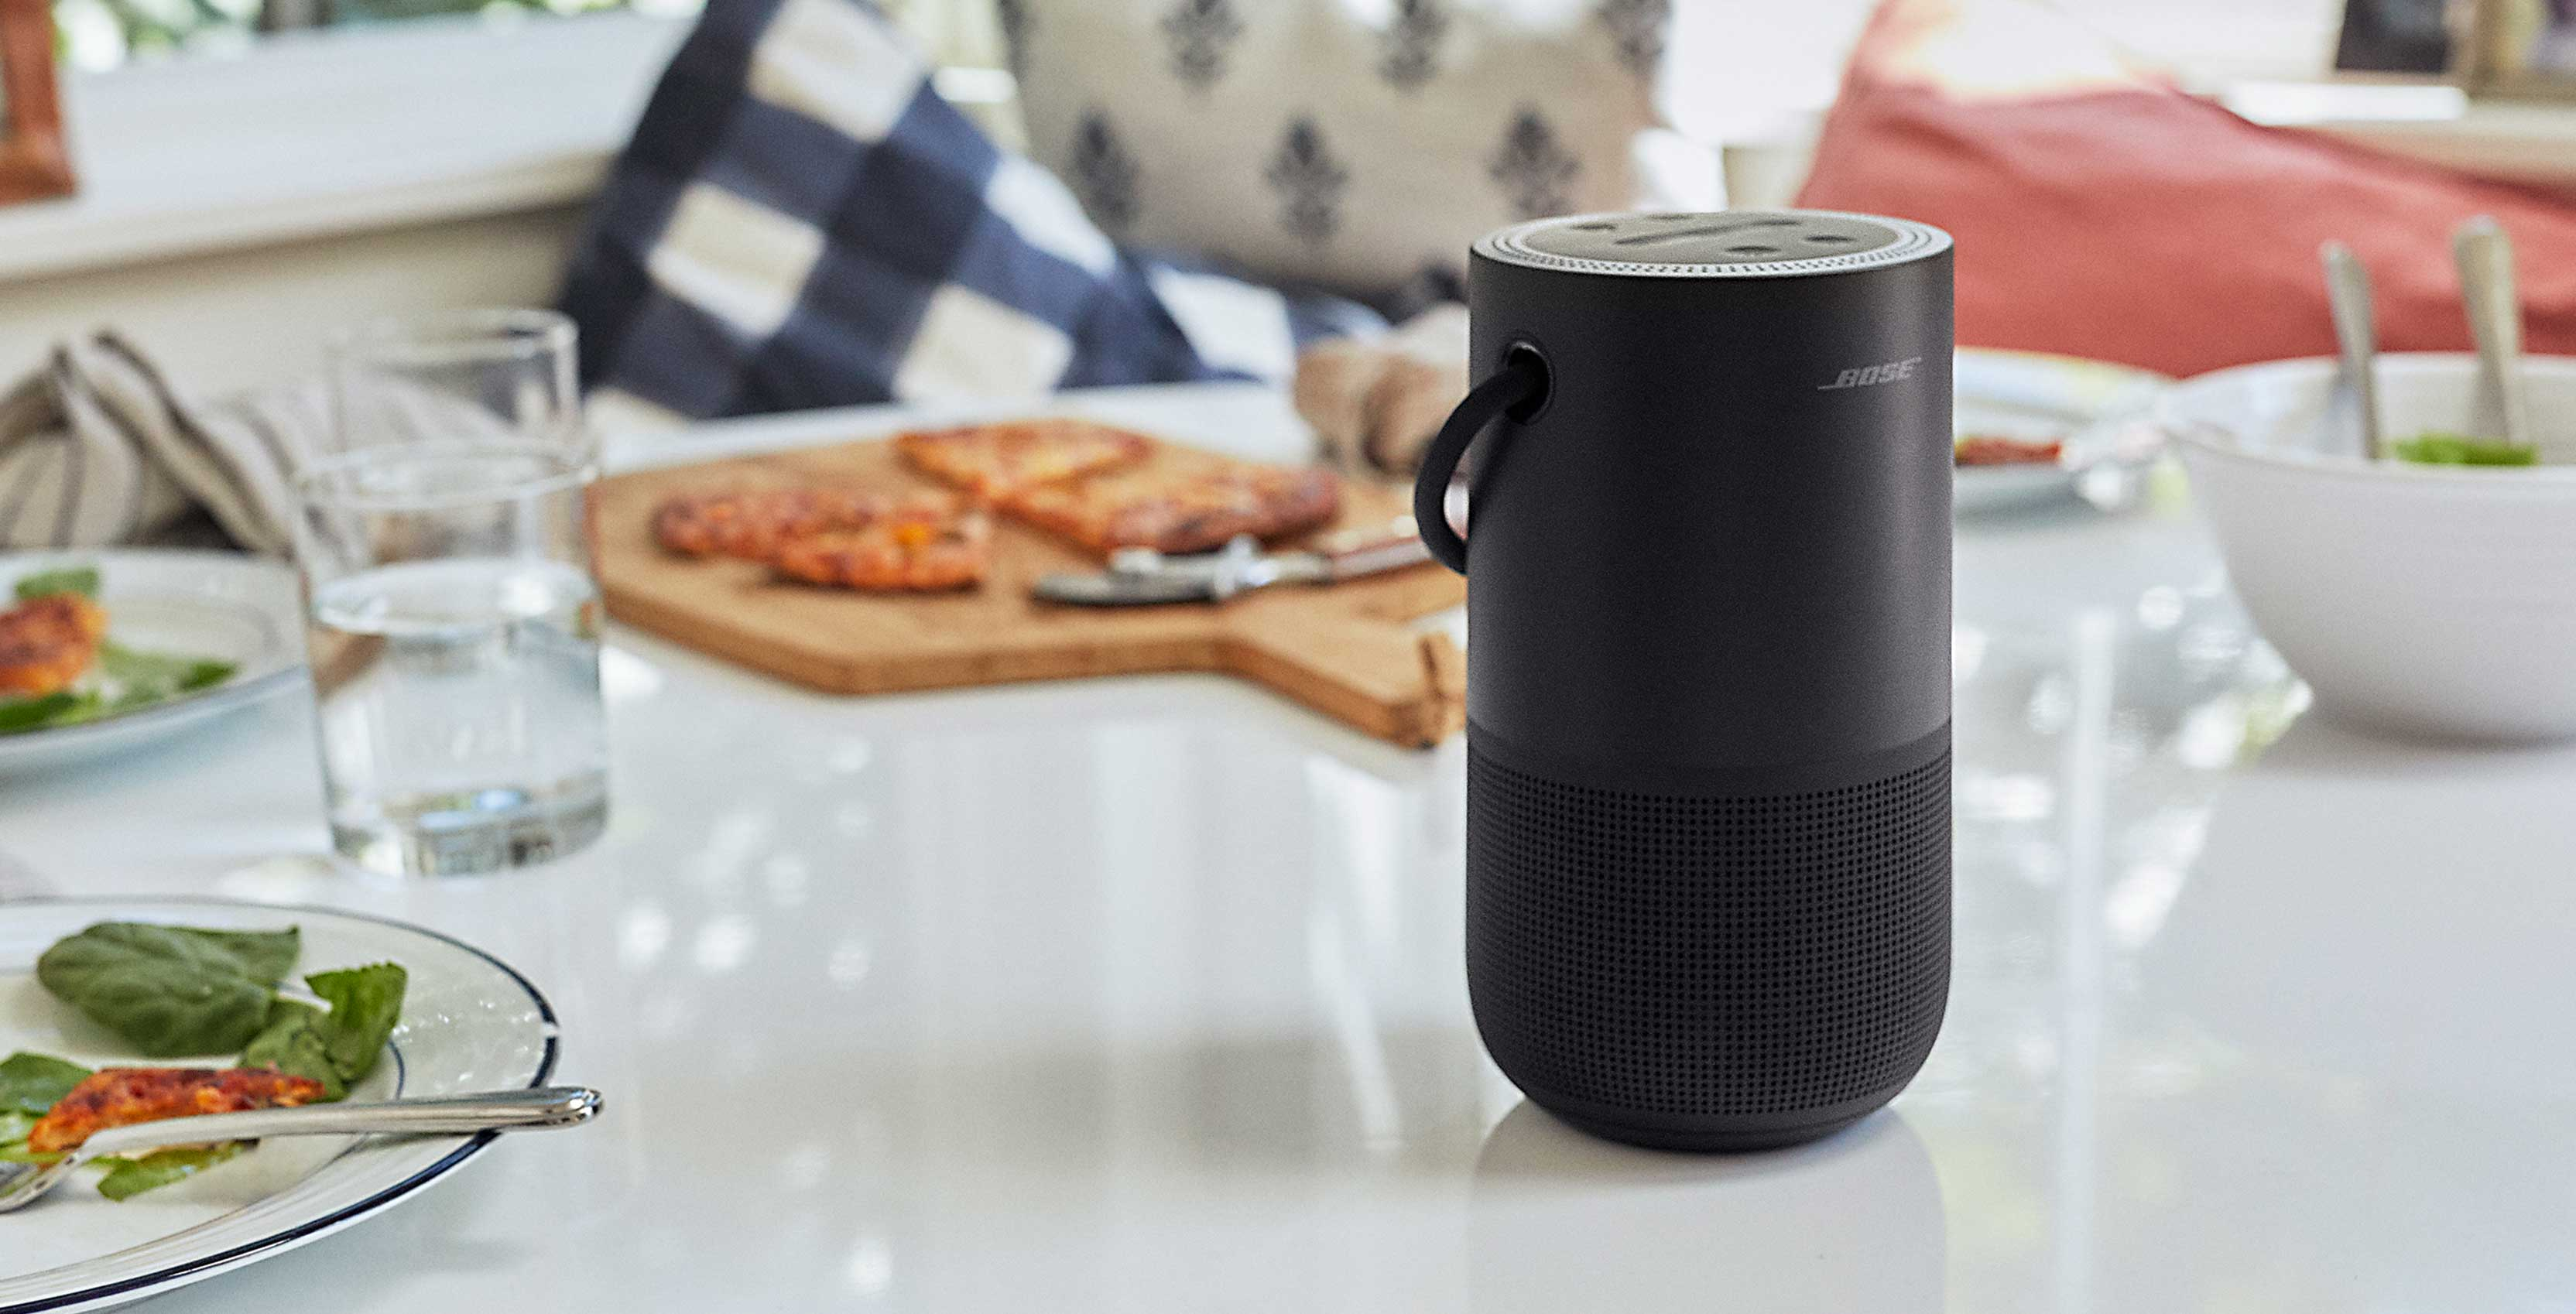 Bose's new portable Bluetooth speaker has Google Assistant